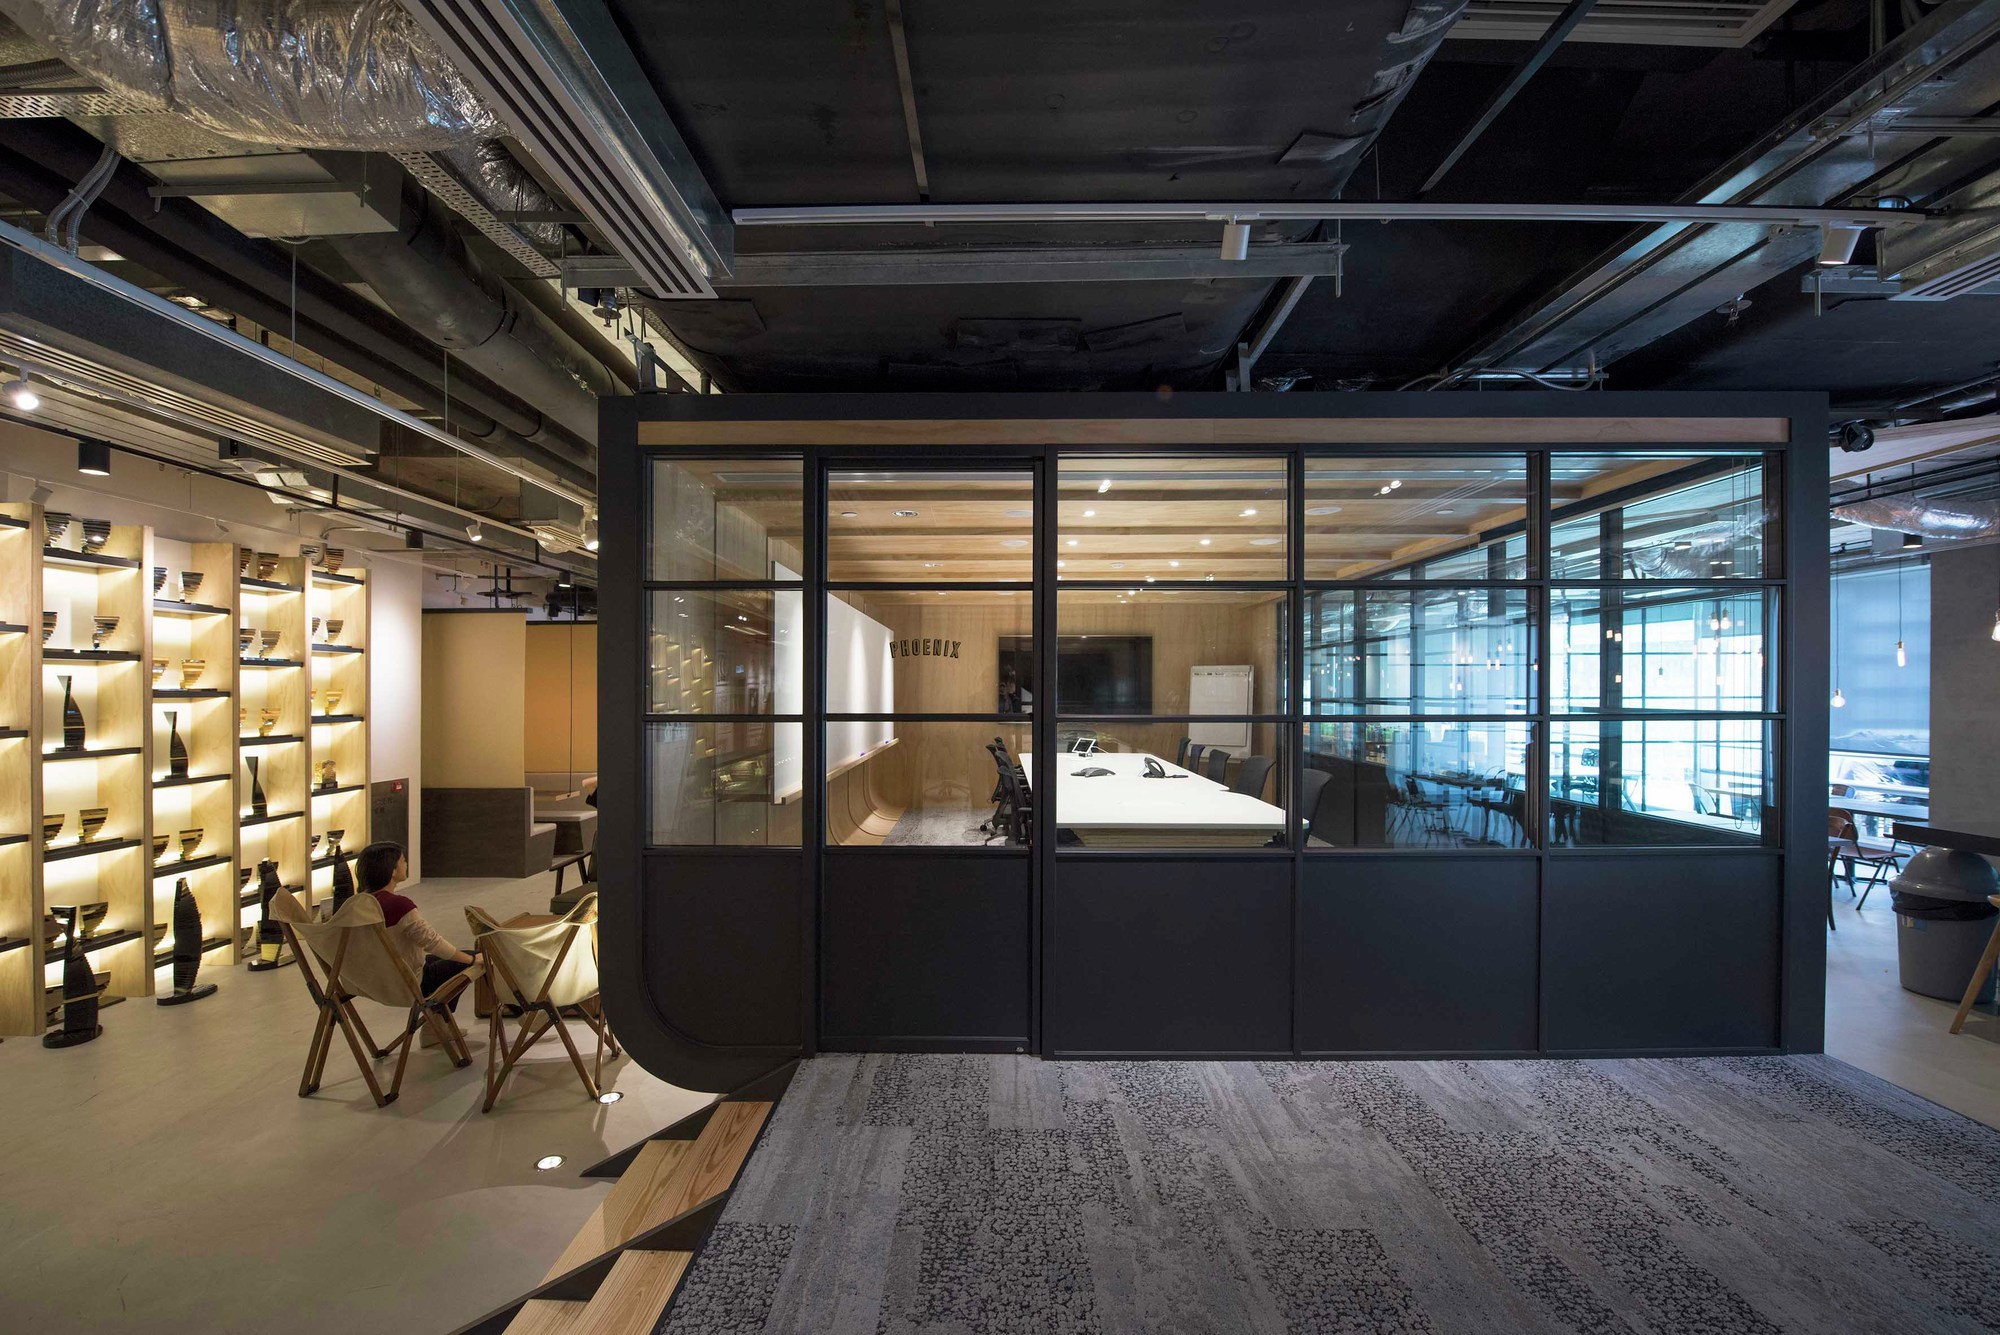 Leo burnett hq bean buro archdaily for Buro interior